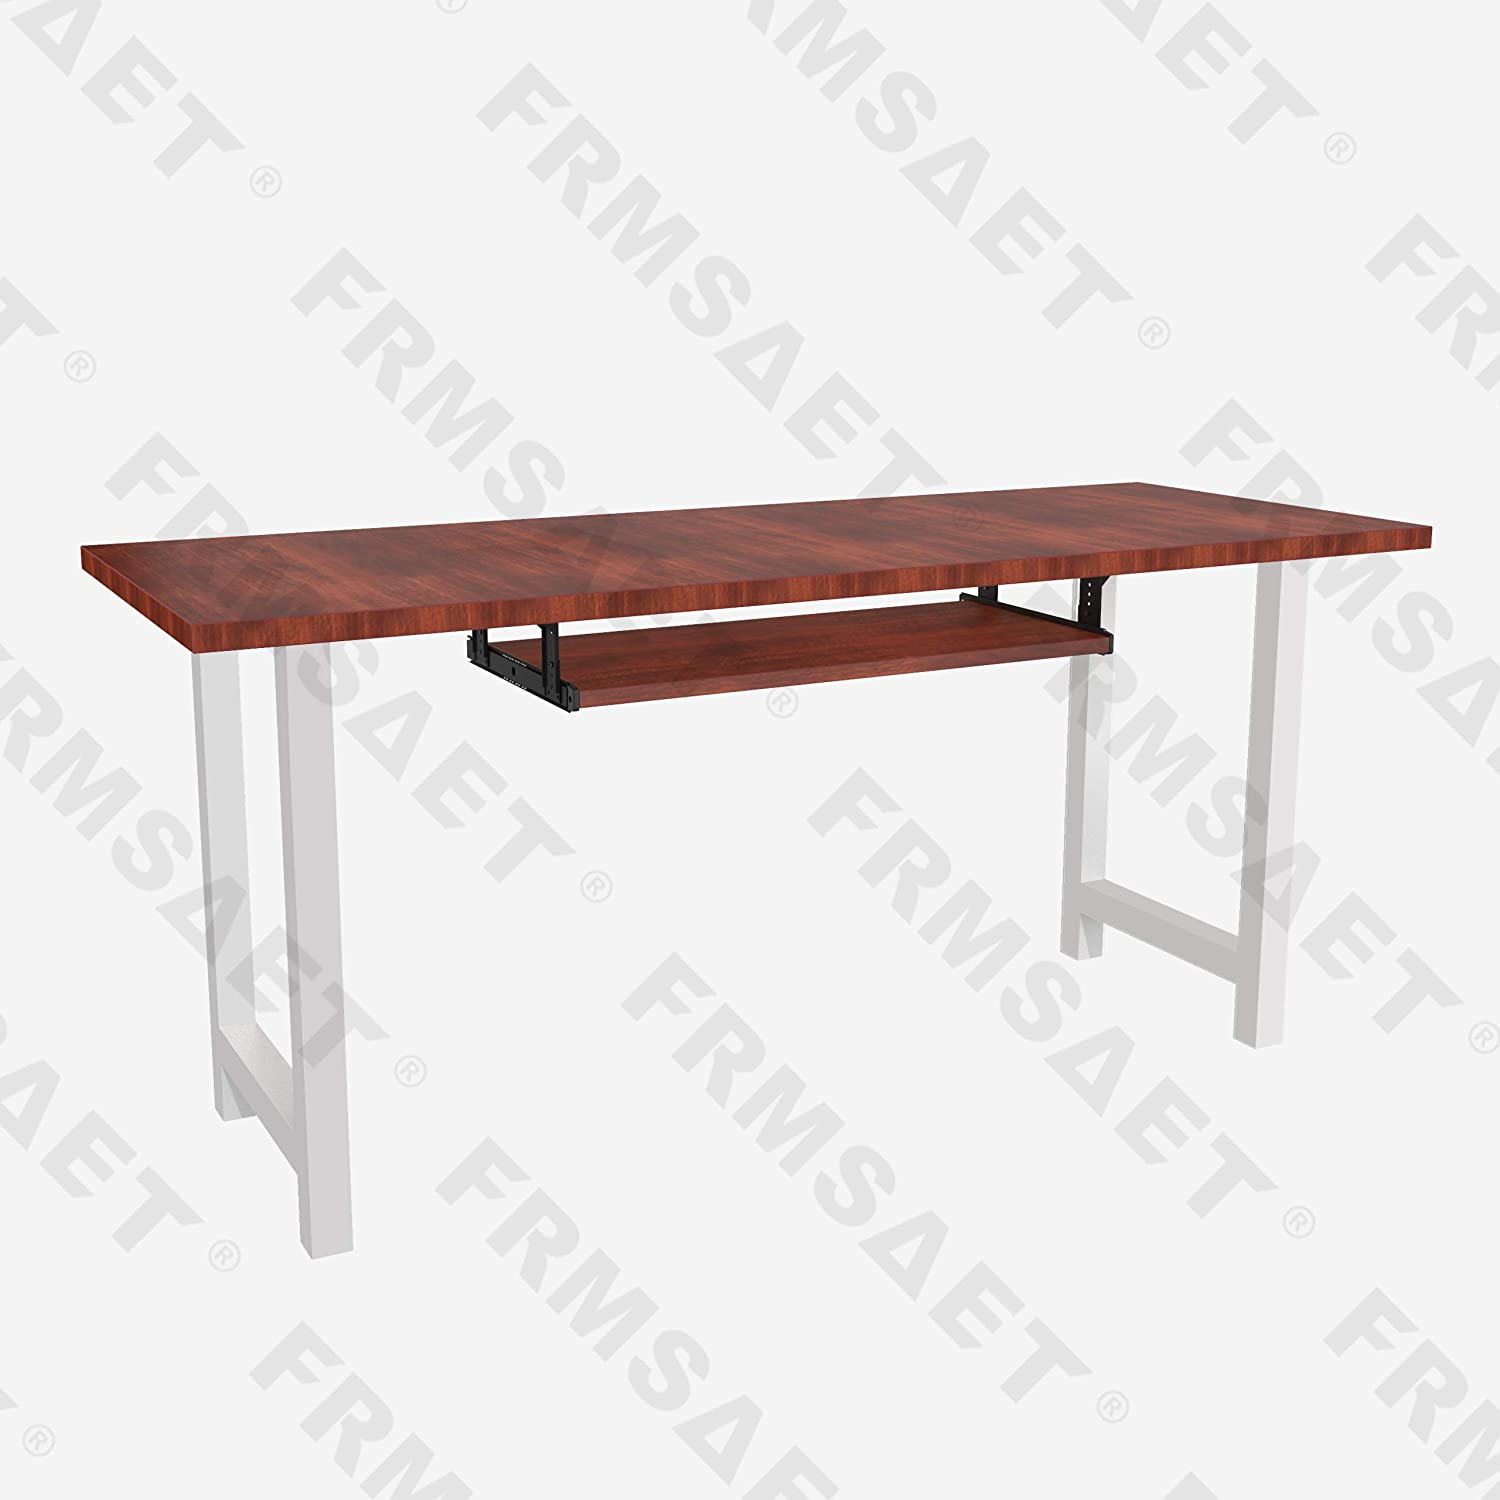 FRMSAET Furniture Accessories Office Product Suits Hardware 20//24//30 inches Keyboard Drawer Tray Wood Holder Under Desk Adjustable Height Platform. 24 inches, Mahogany